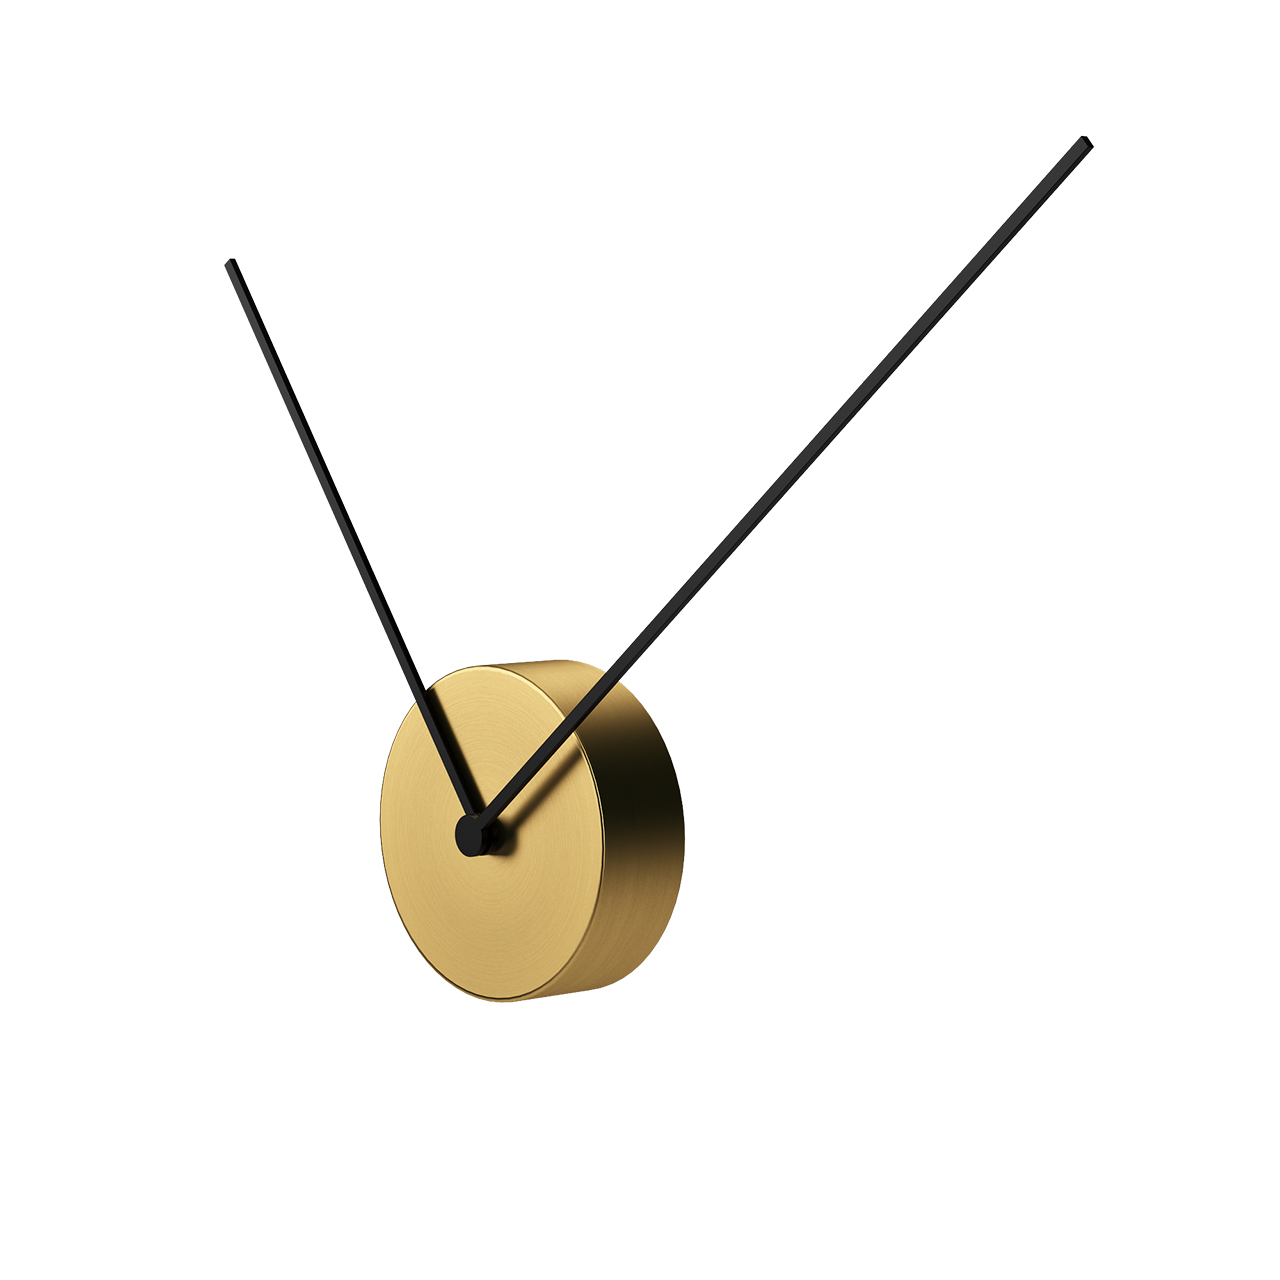 Less Wall Clock by Petite Friture